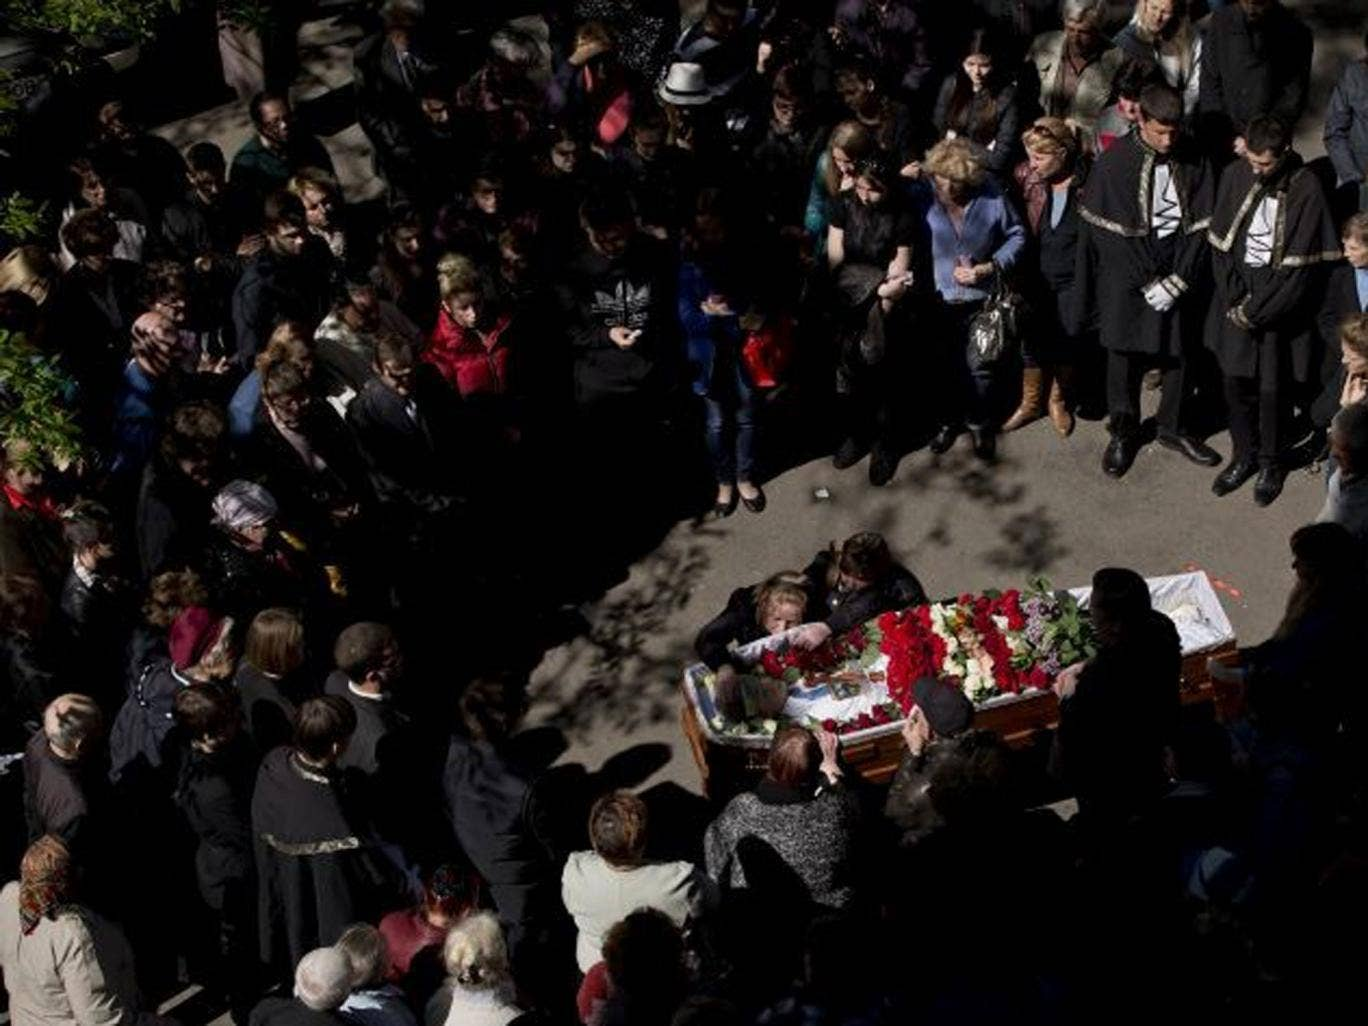 People gather around the coffin of 17 year-old Vadim Papura during a religious service outside the apartment block he lived in, in Odessa, Ukraine, Tuesday, May 6, 2014.